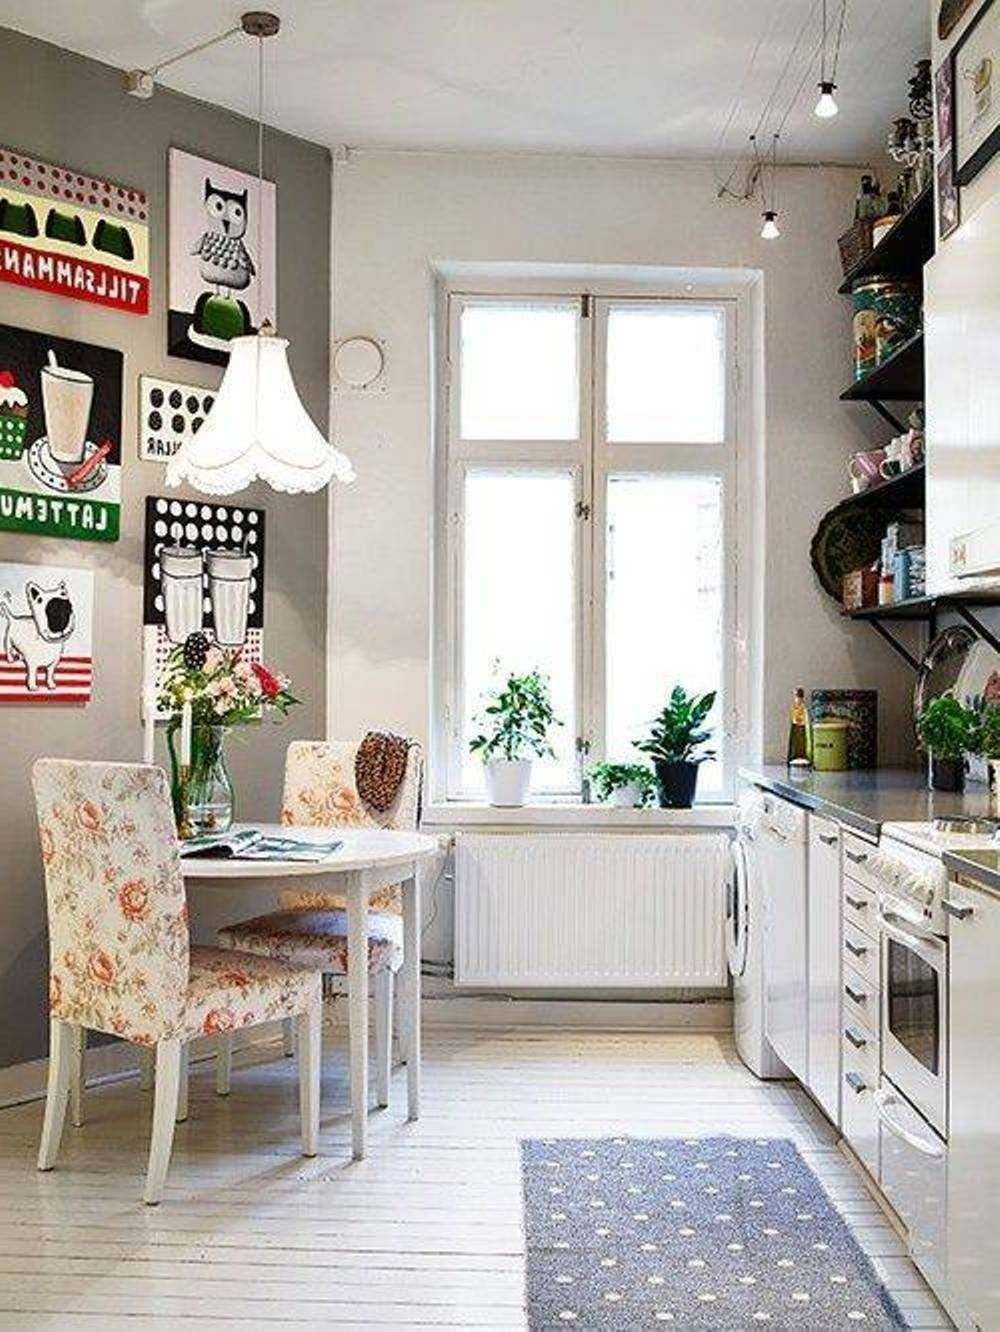 Merveilleux Pictures 7 Of 16   Small Apartment Nordic Scandinavian Retro .